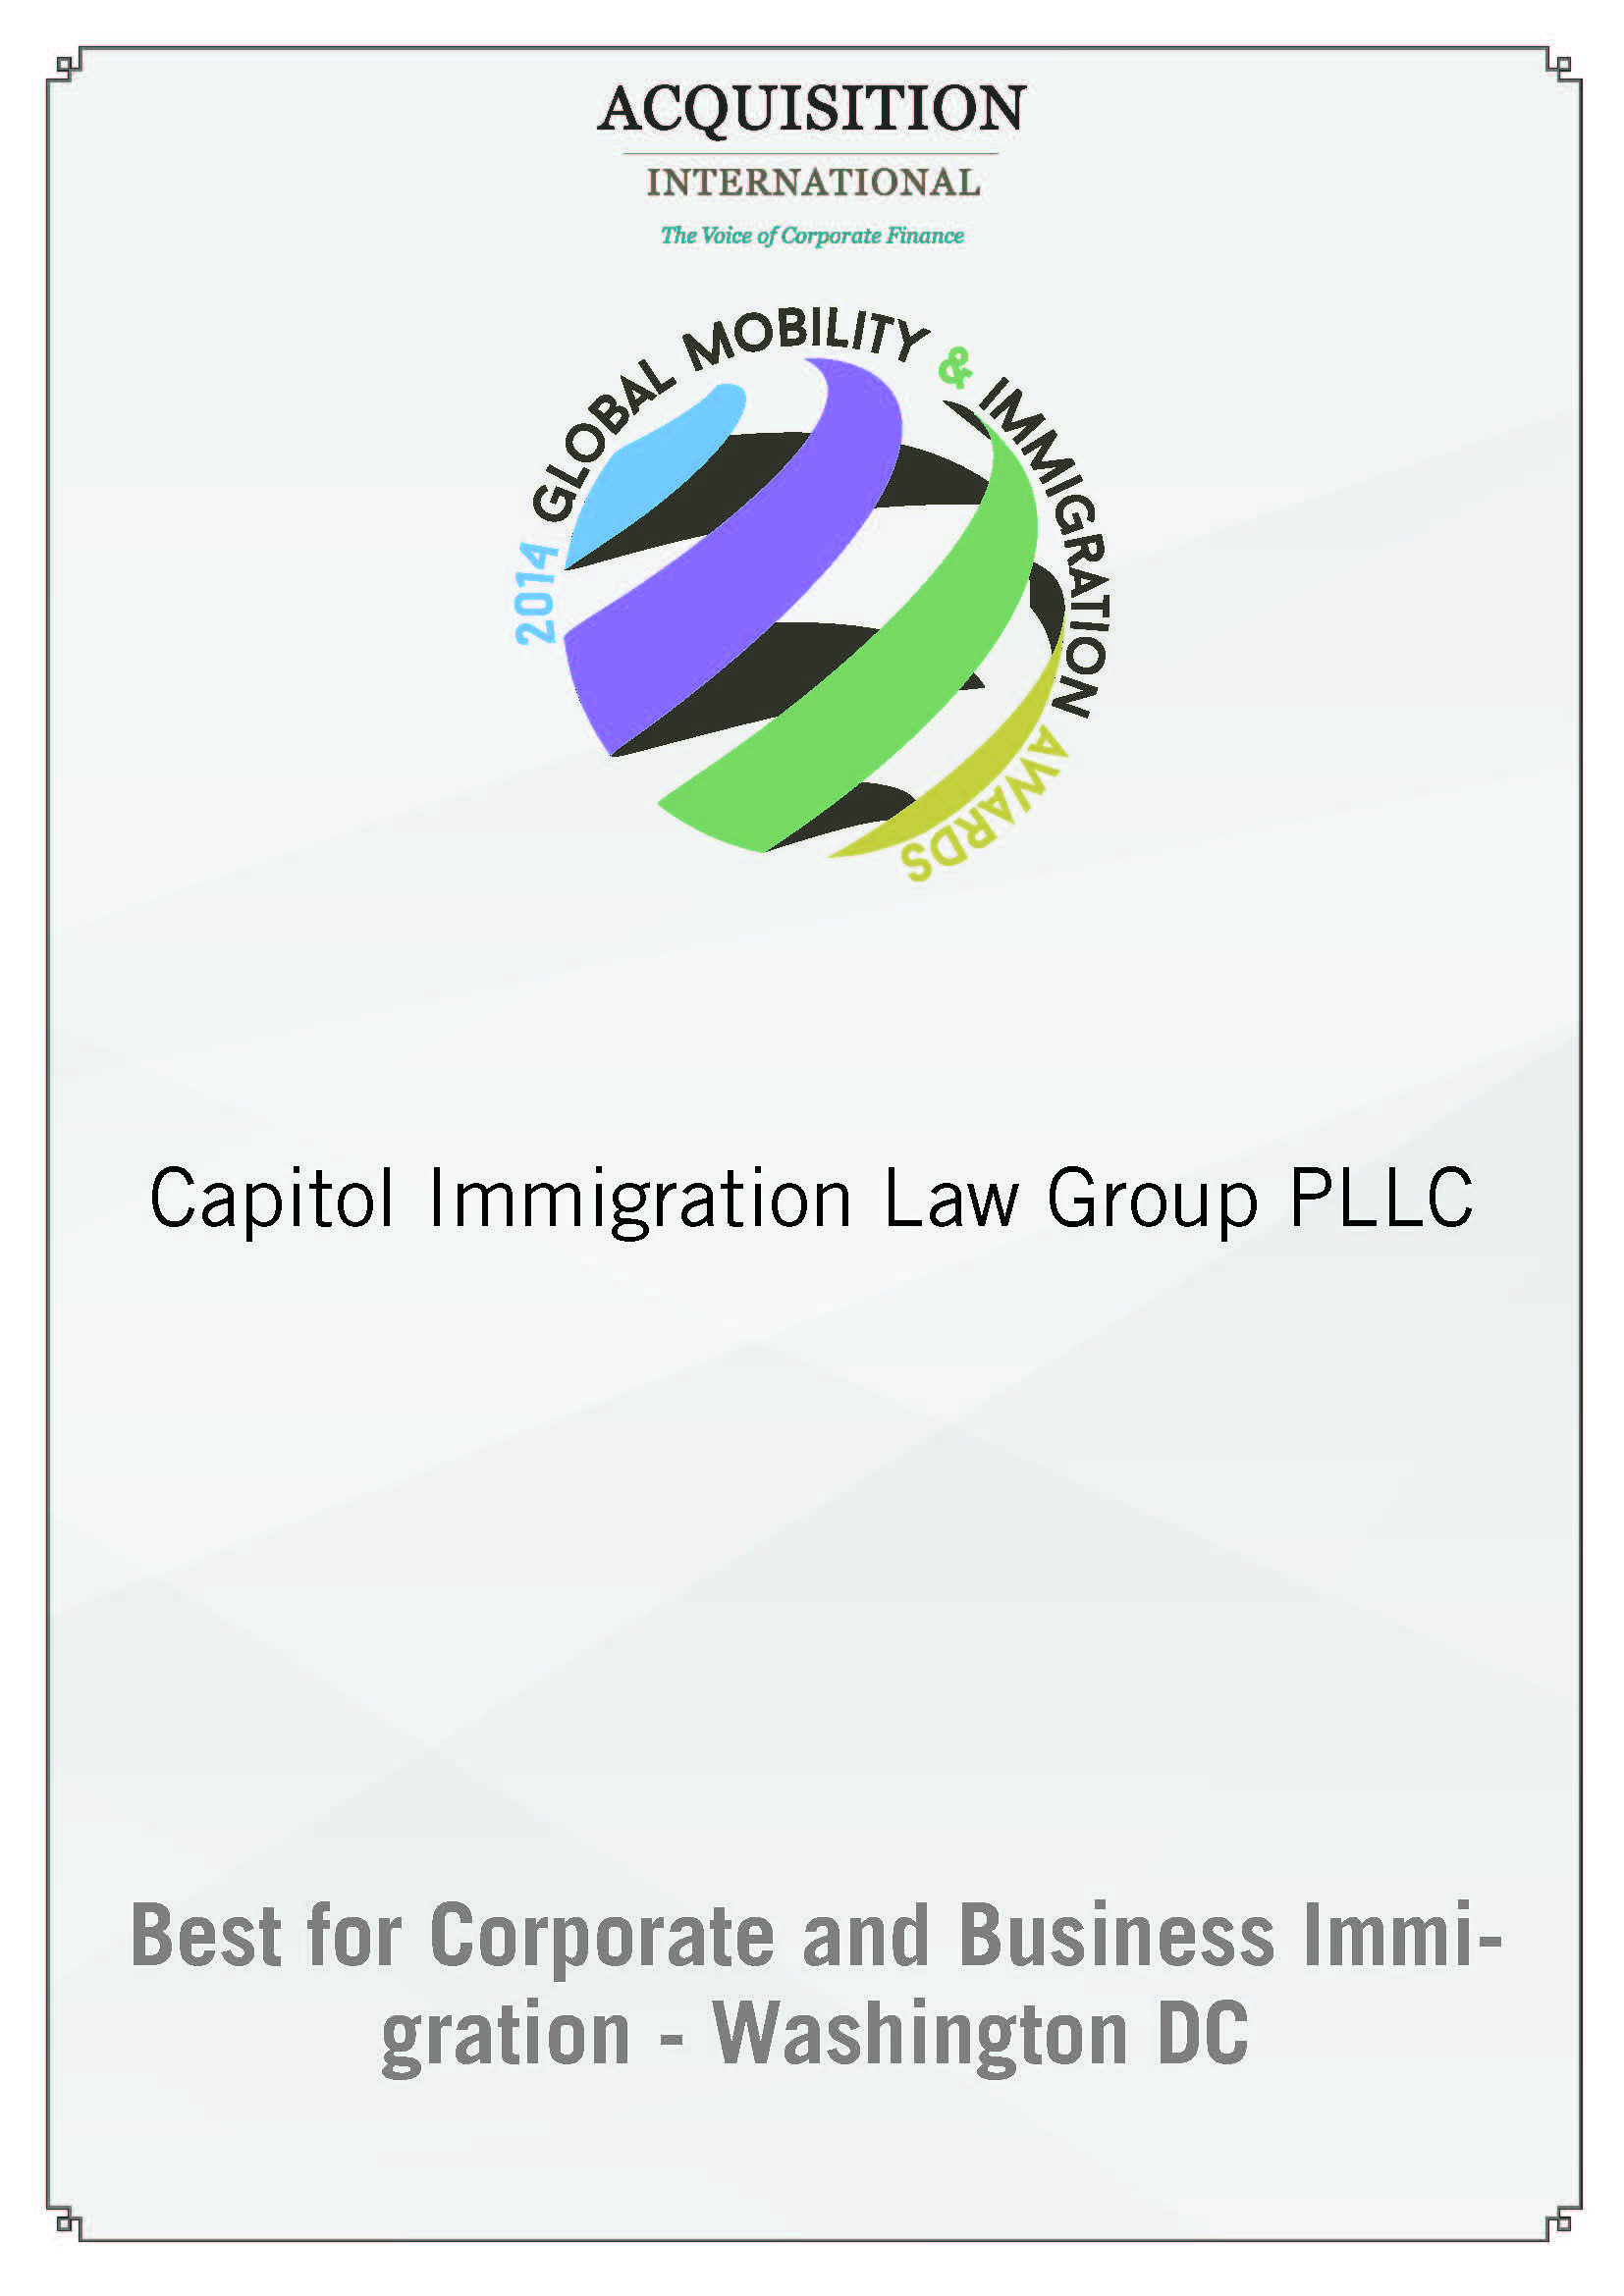 Certificate_best_for_corporate_and_business_immigration_washington_dc 3